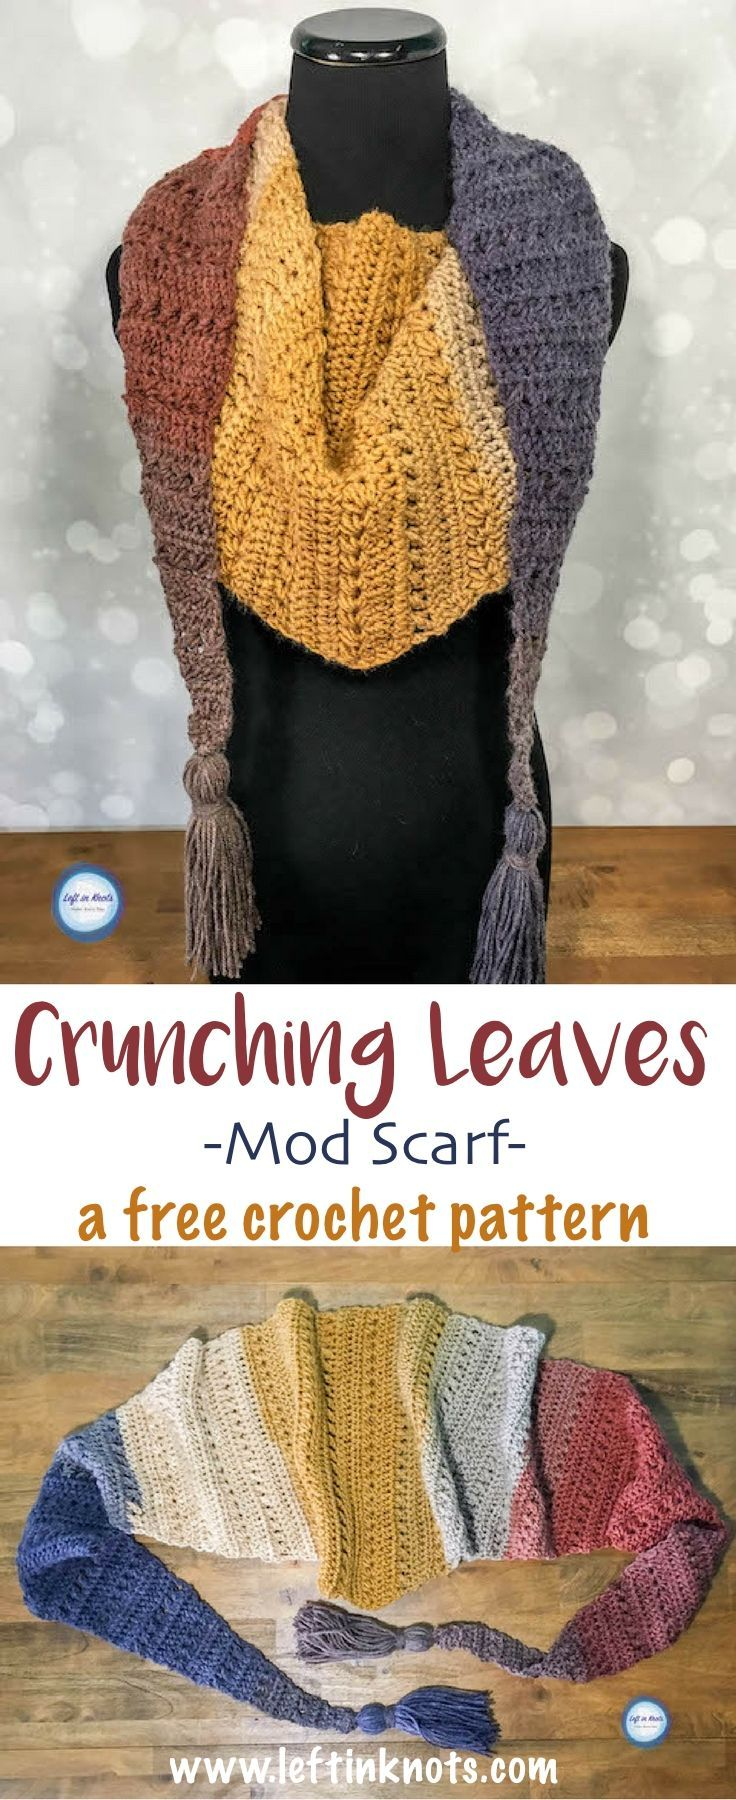 The Crunching Leaves Mod Scarf: FREE #crochet pattern features all the best warm fall tones with just one cake of Lion Brand Mandala yarn!  This trendy triangle scarf will keep you warm all fall and winter long.  Read more for the free modern crochet pattern.  Special stitch descriptions make this pattern easy - even for beginners!